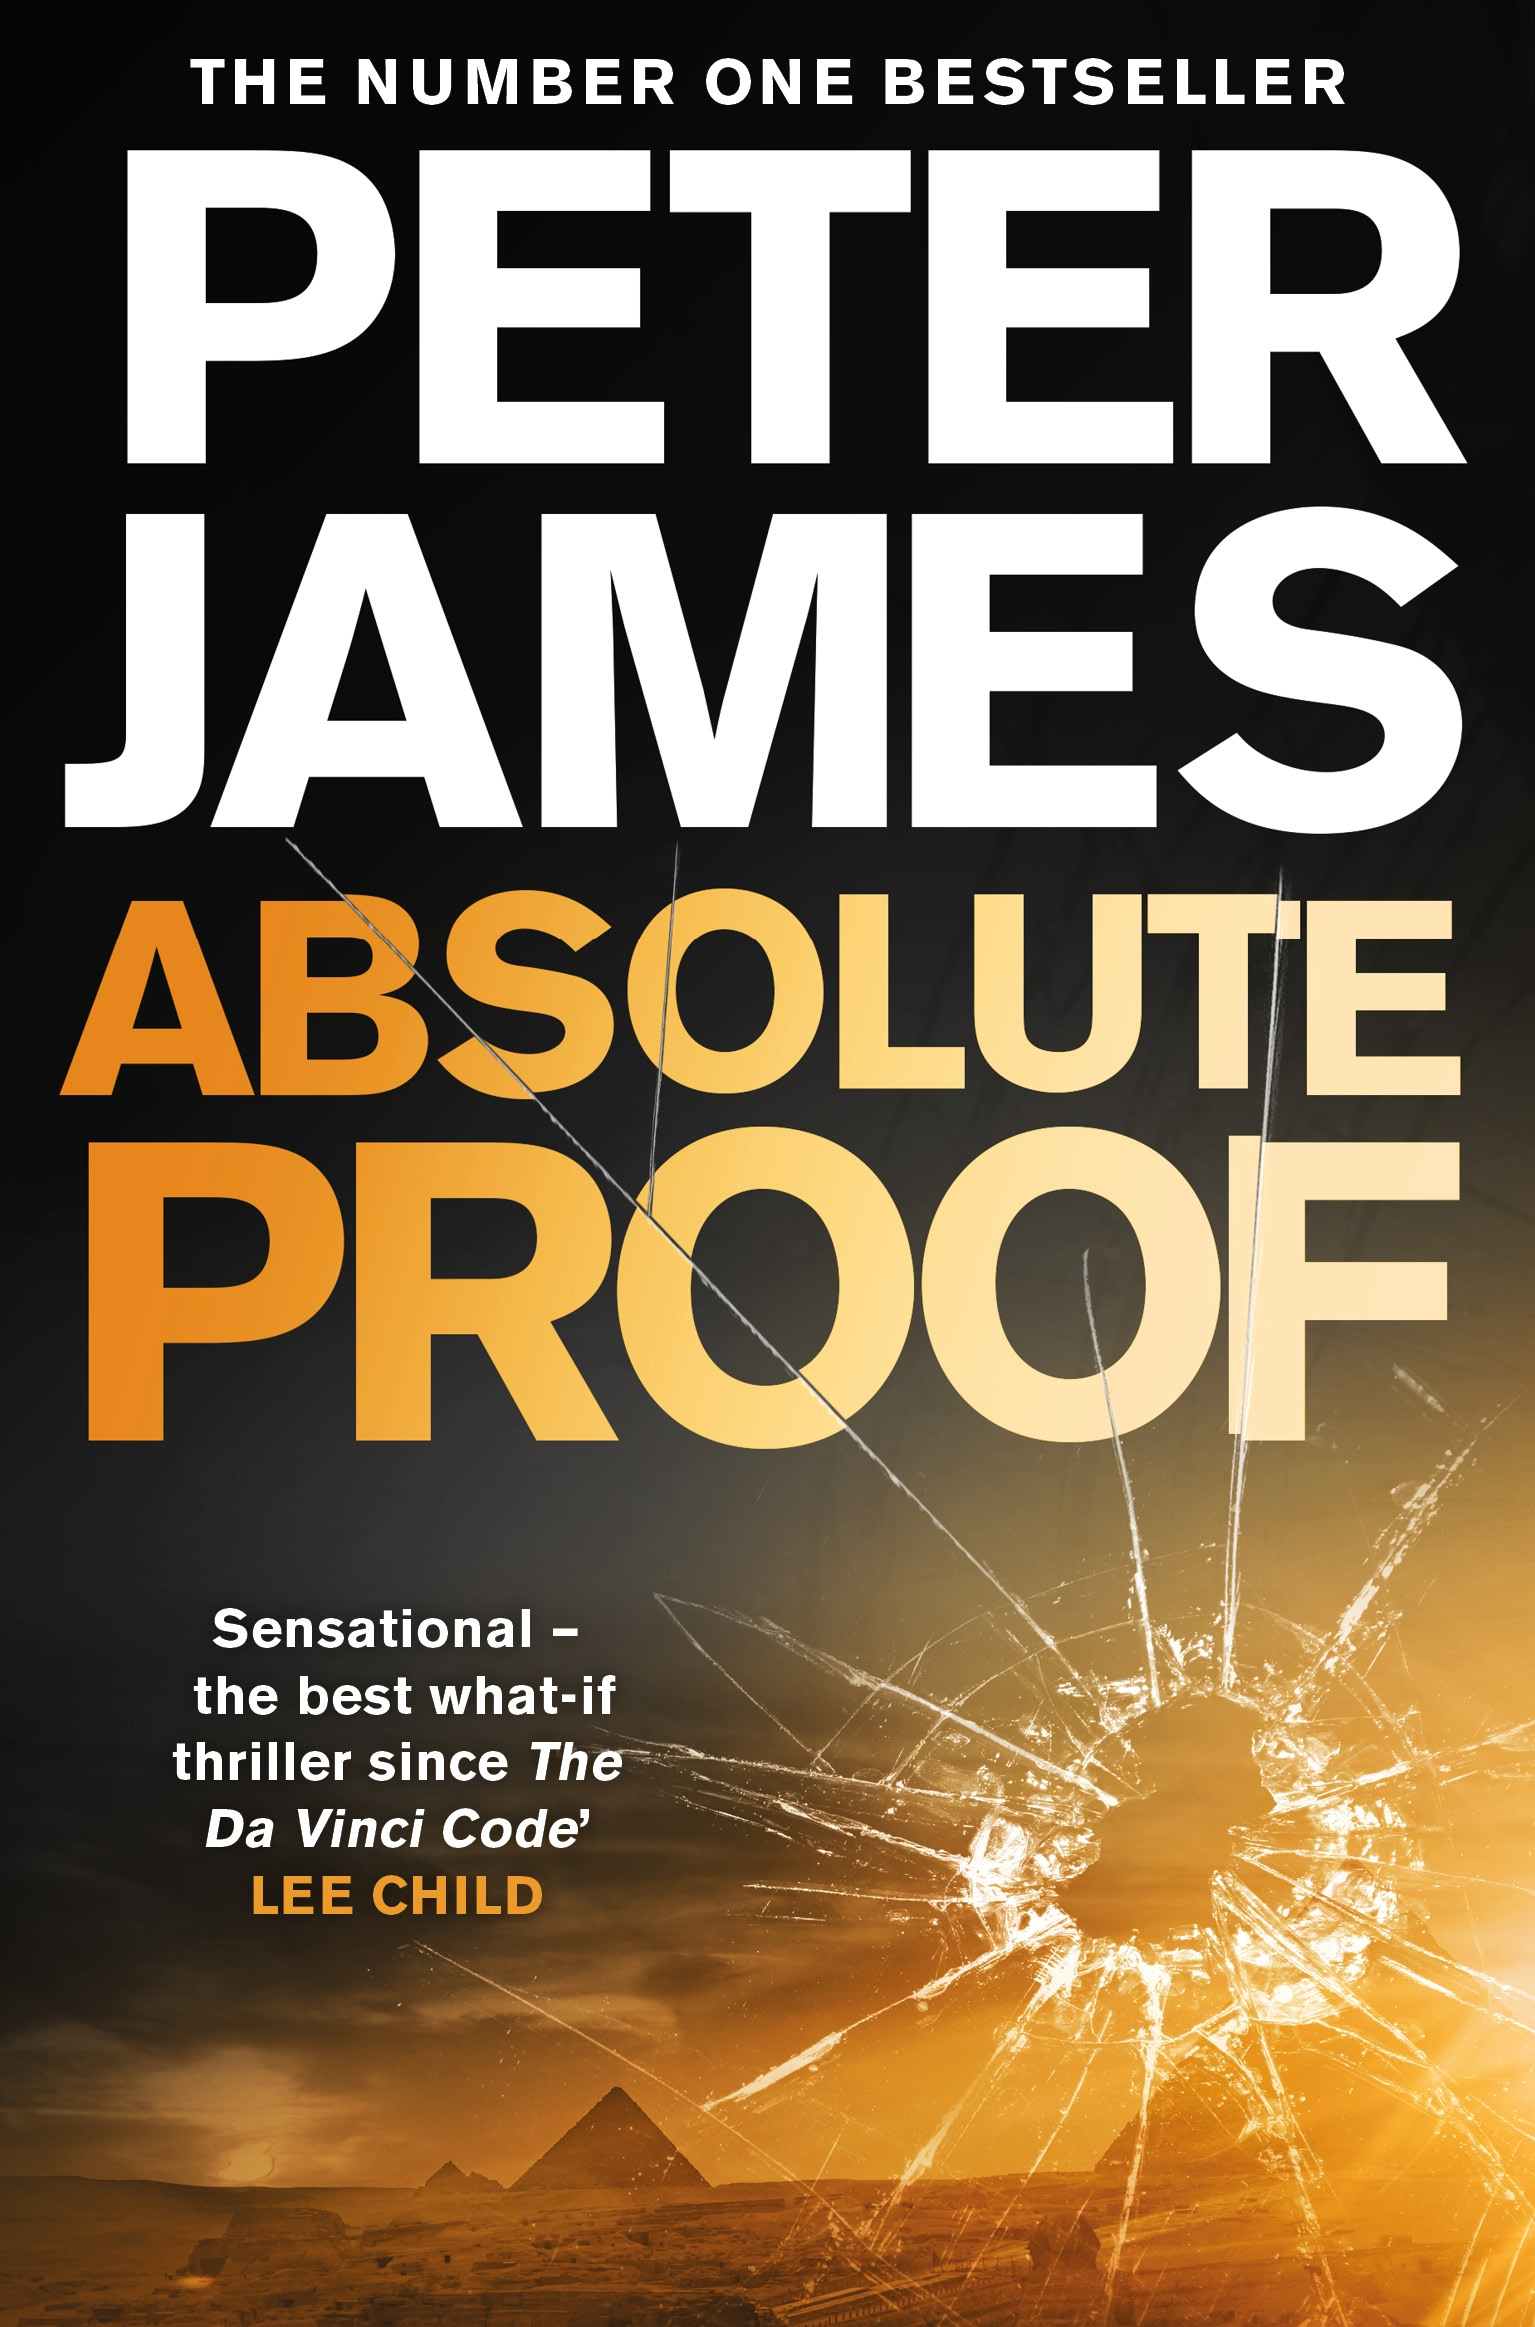 ABSOLUTE PROOF  Thriller, 400 Pages Macmillan, October 2018  What would it take to prove the existence of God? And what would be the consequences?  This question and its answer lie at the heart of  Absolute Proof , an international thriller from bestselling author Peter James.  The false faith of a billionaire evangelist, the life's work of a famous atheist, and the credibility of each of the world's major religions are all under threat. If Ross Hunter can survive long enough to present the evidence . . .